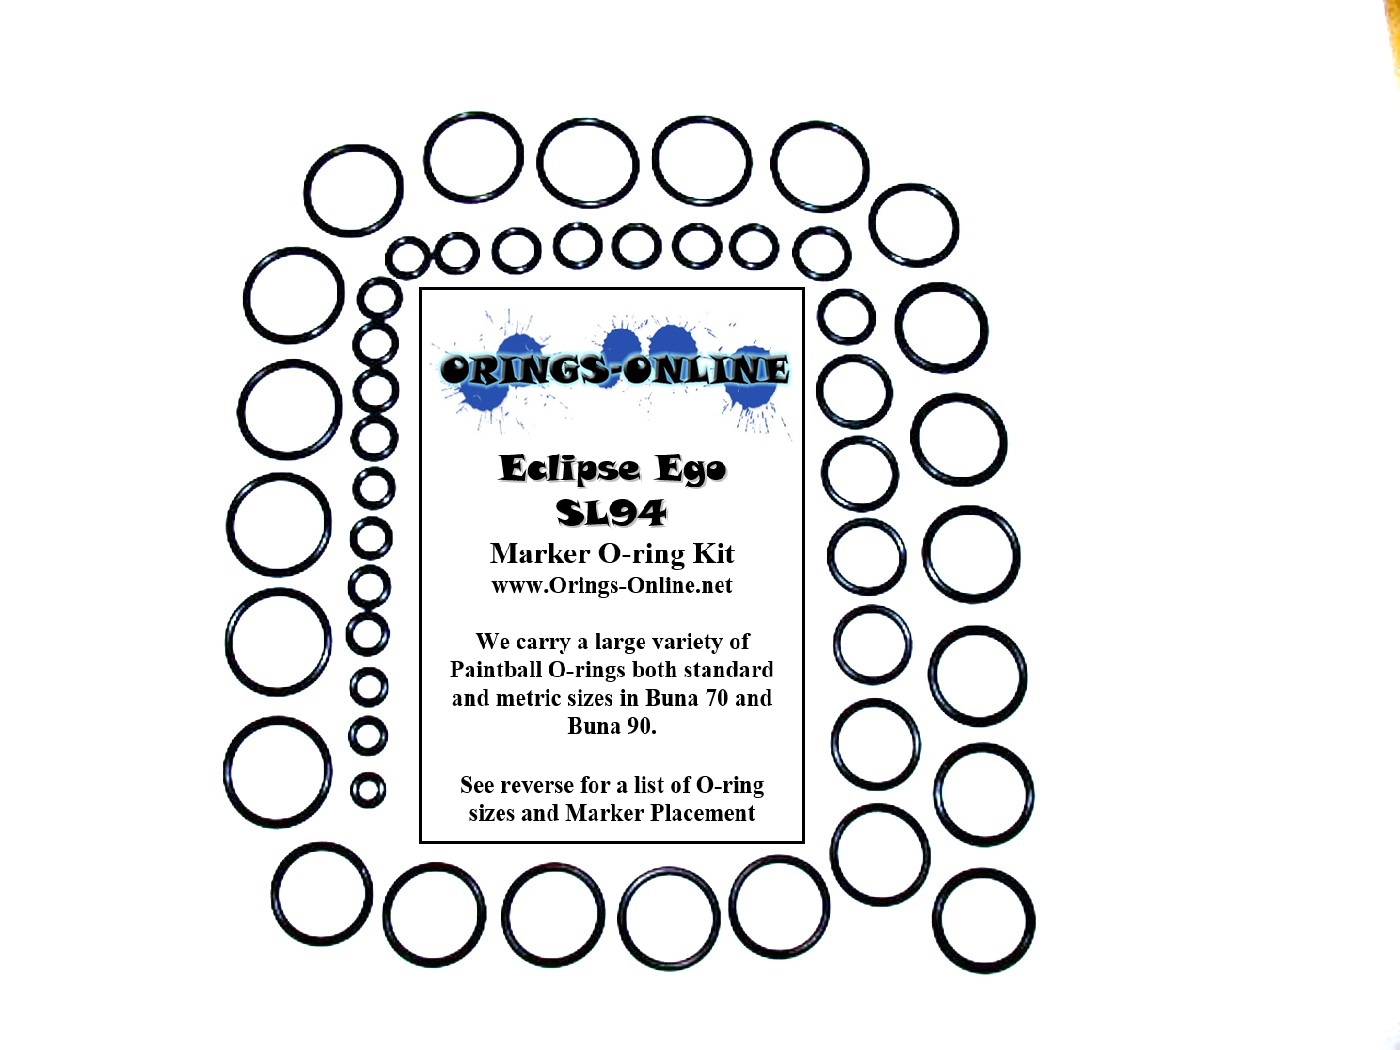 Planet Eclipse Ego SL94 Marker O-ring Kit